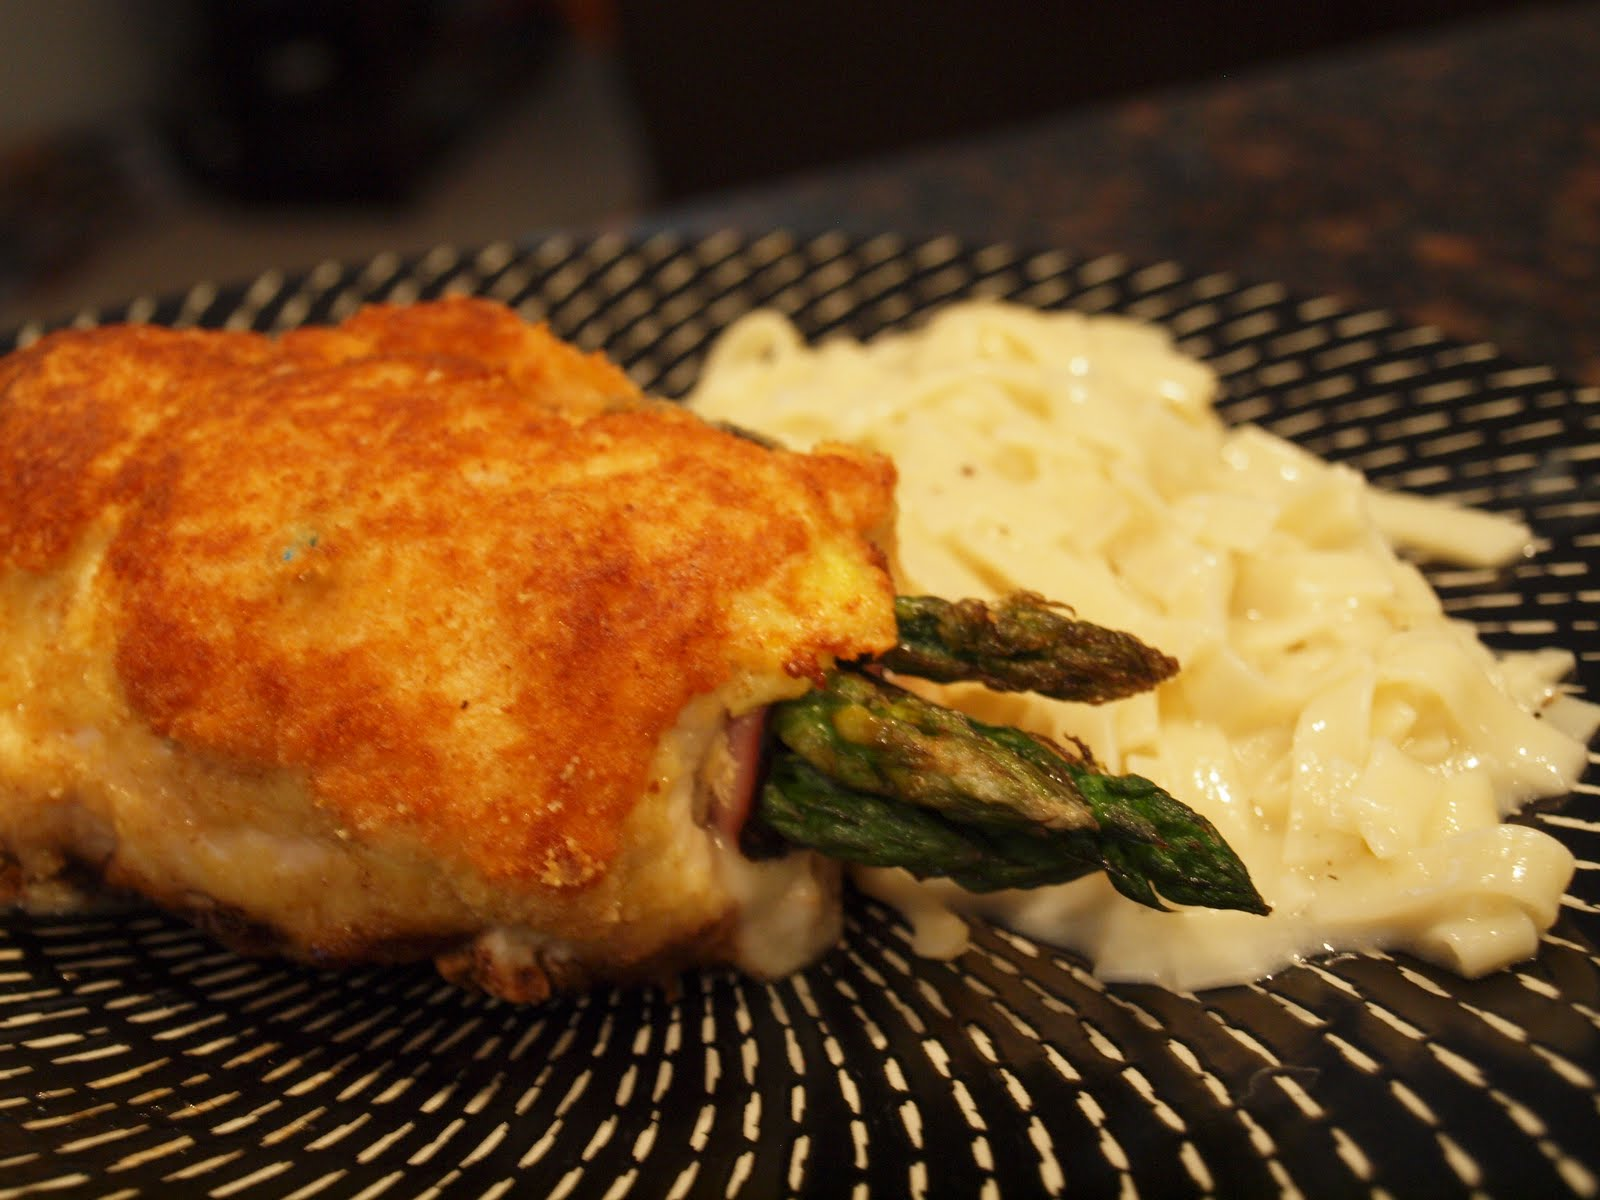 Dishin' It Out: Asparagus-stuffed Chicken Rolls